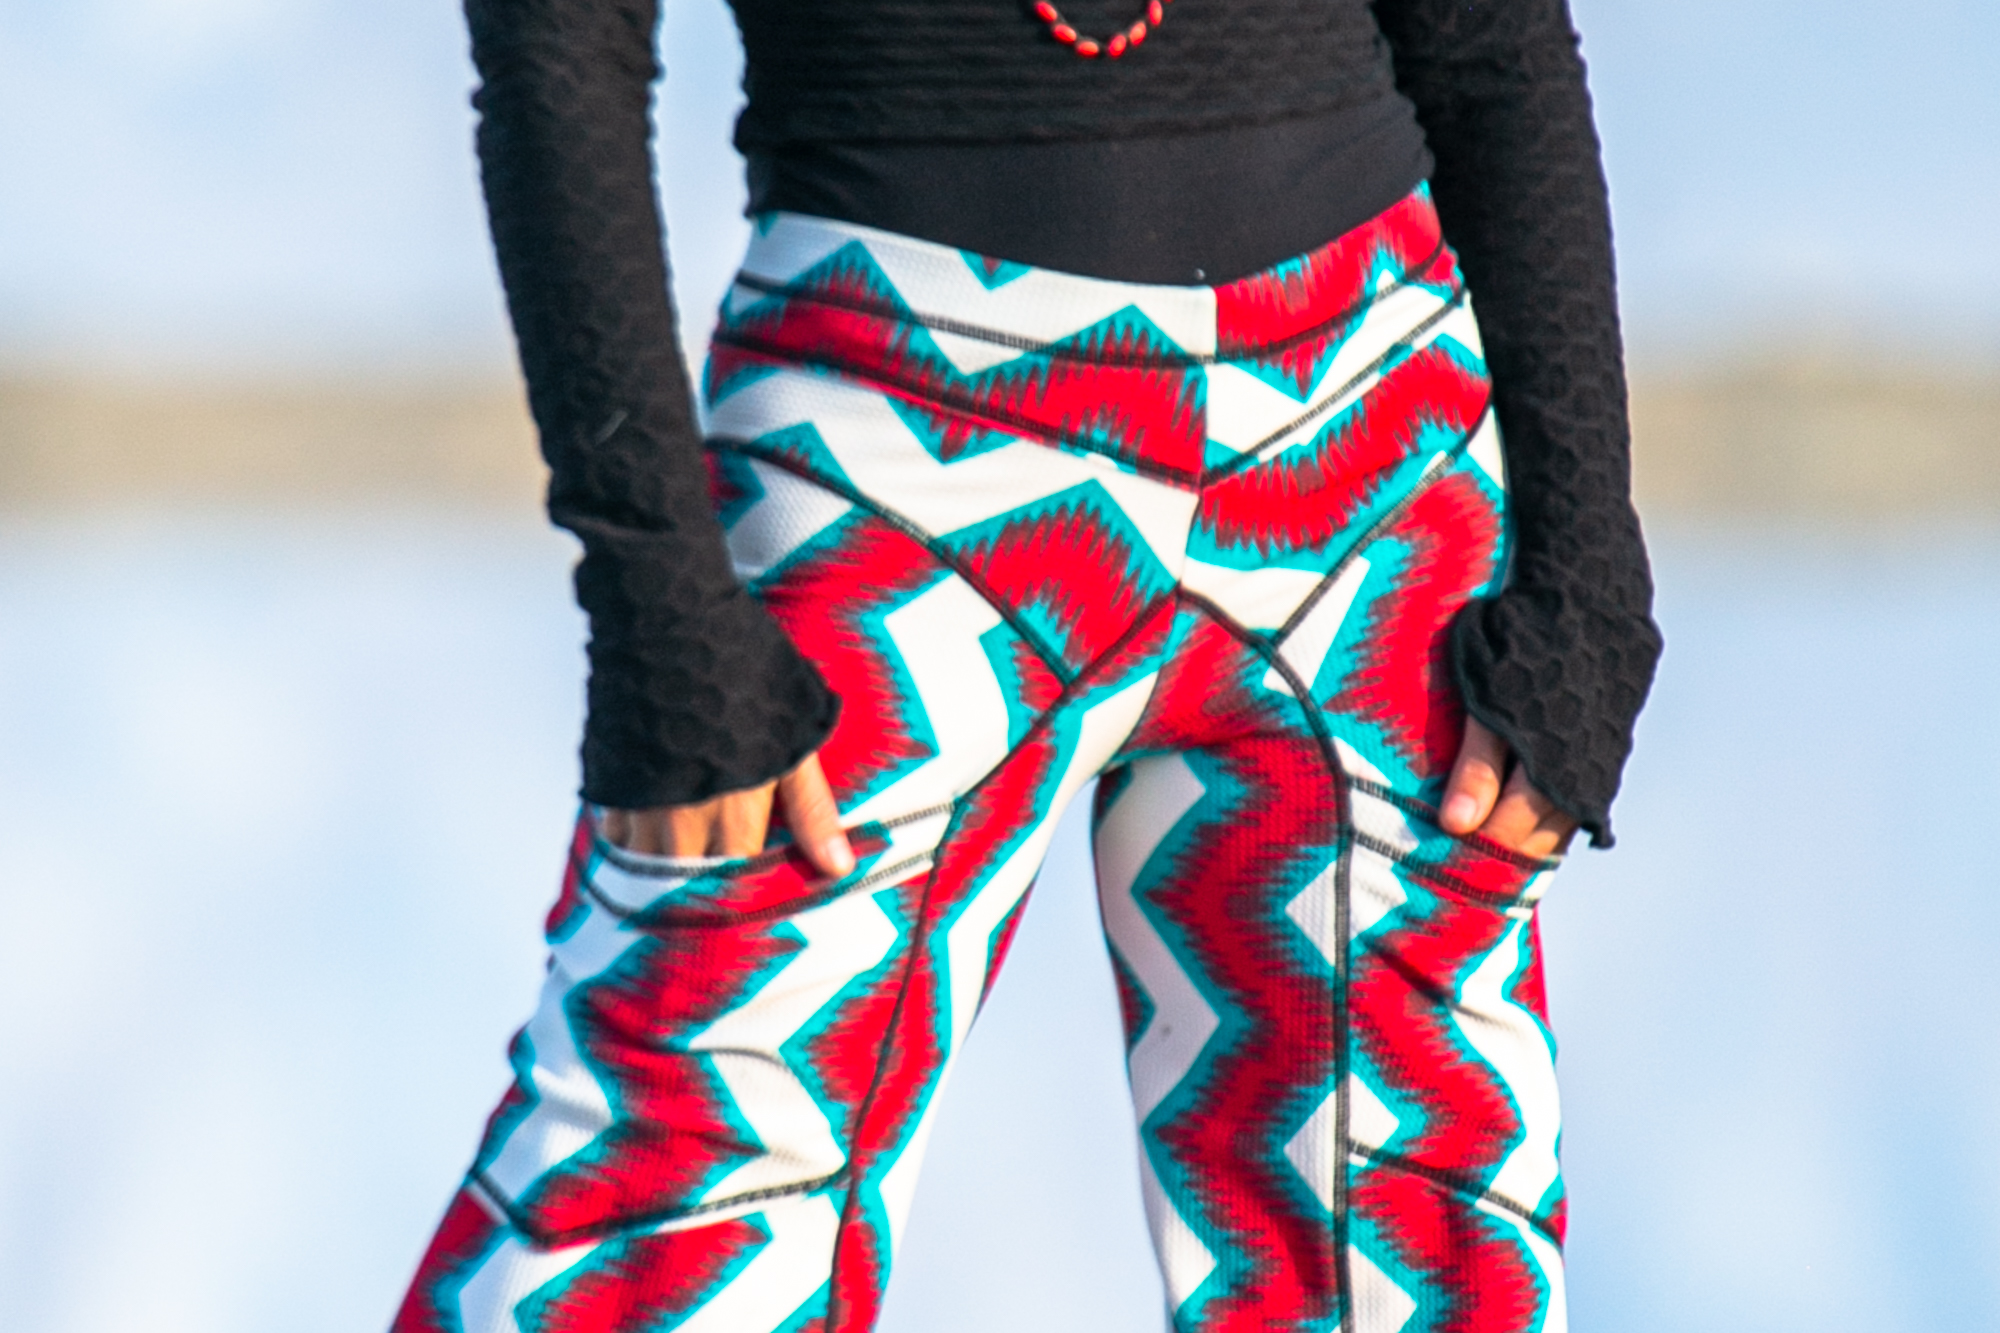 Eco fashion designer Autumn Teneyl wearing wide legged pants with a boho red design